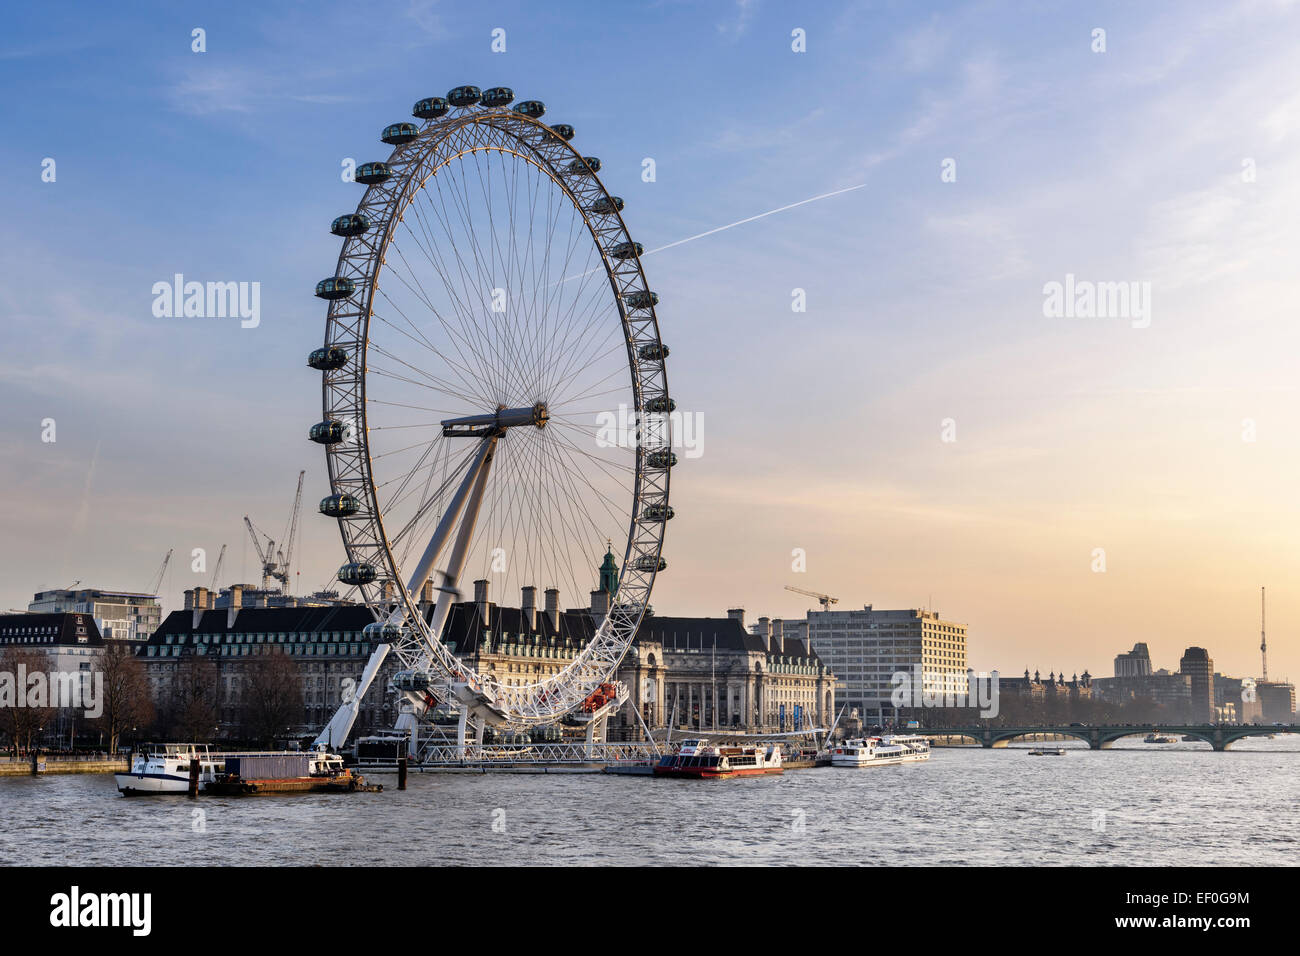 View of the The London Eye from across the River Thames. - Stock Image